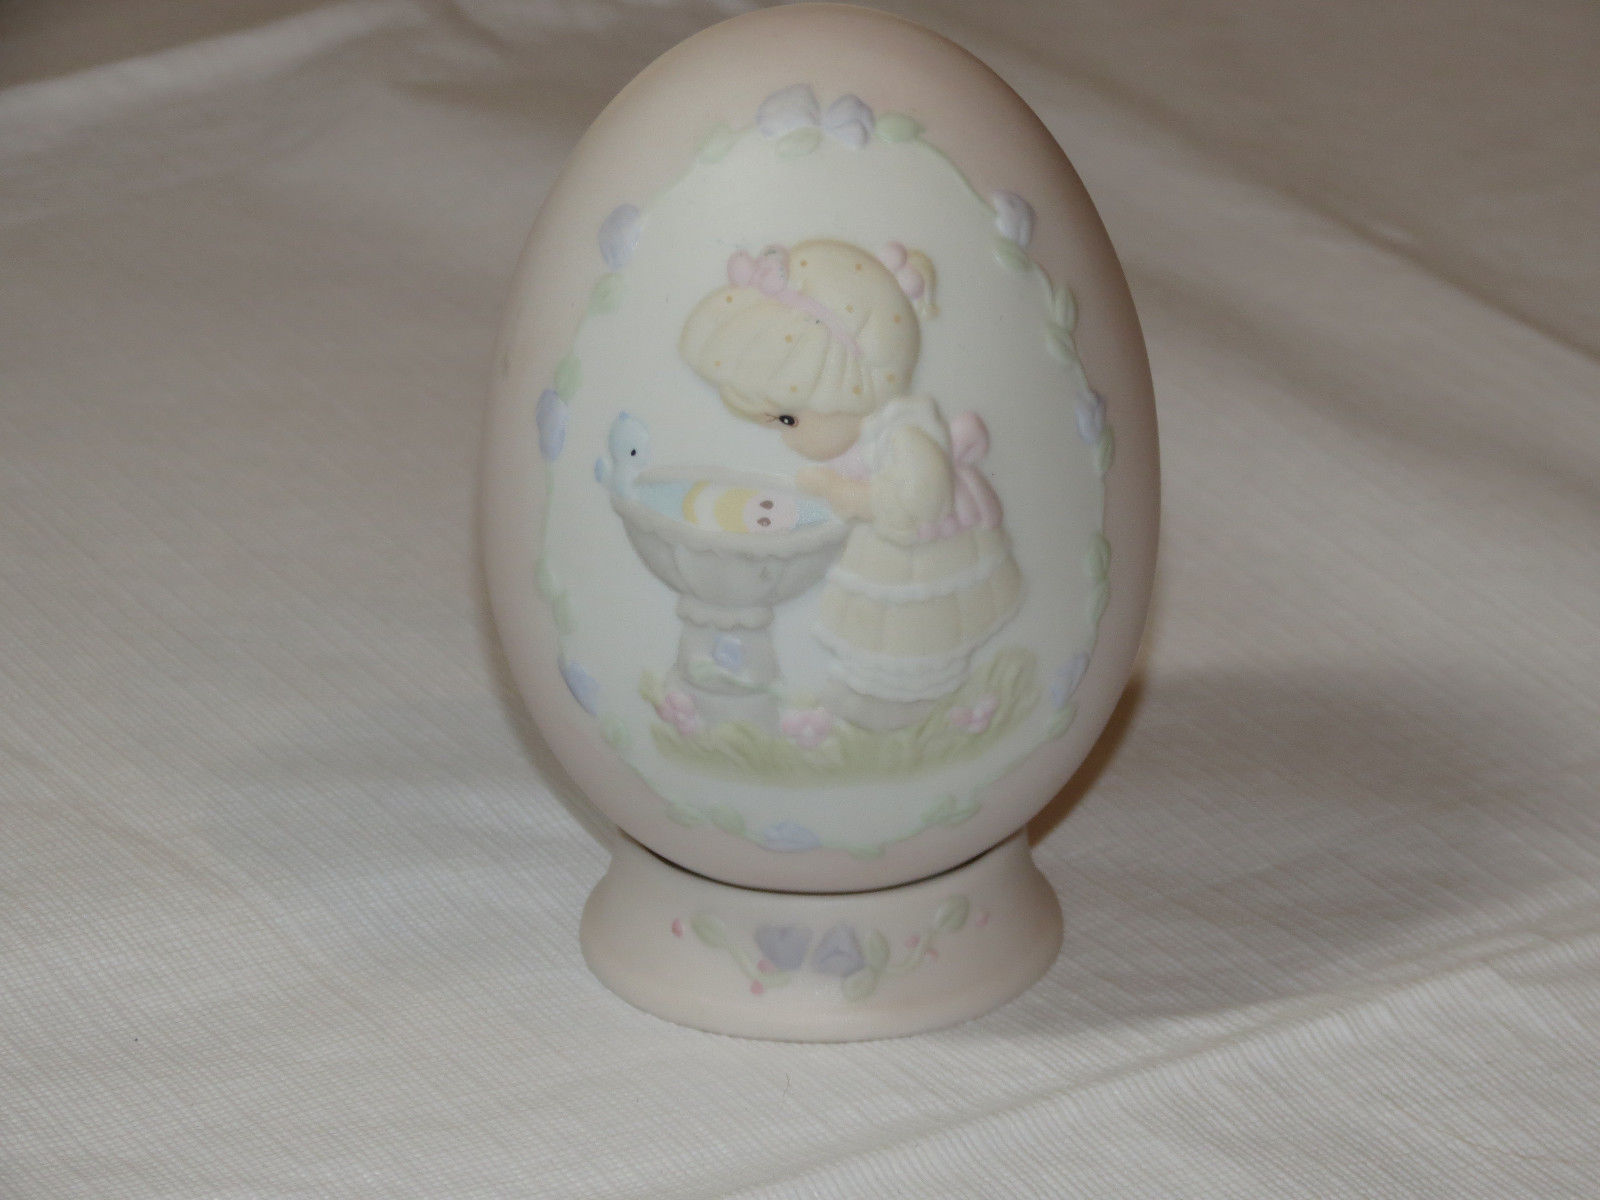 Precious Moments 529095 A Reflection of His Love egg with stand girl birdbath ~